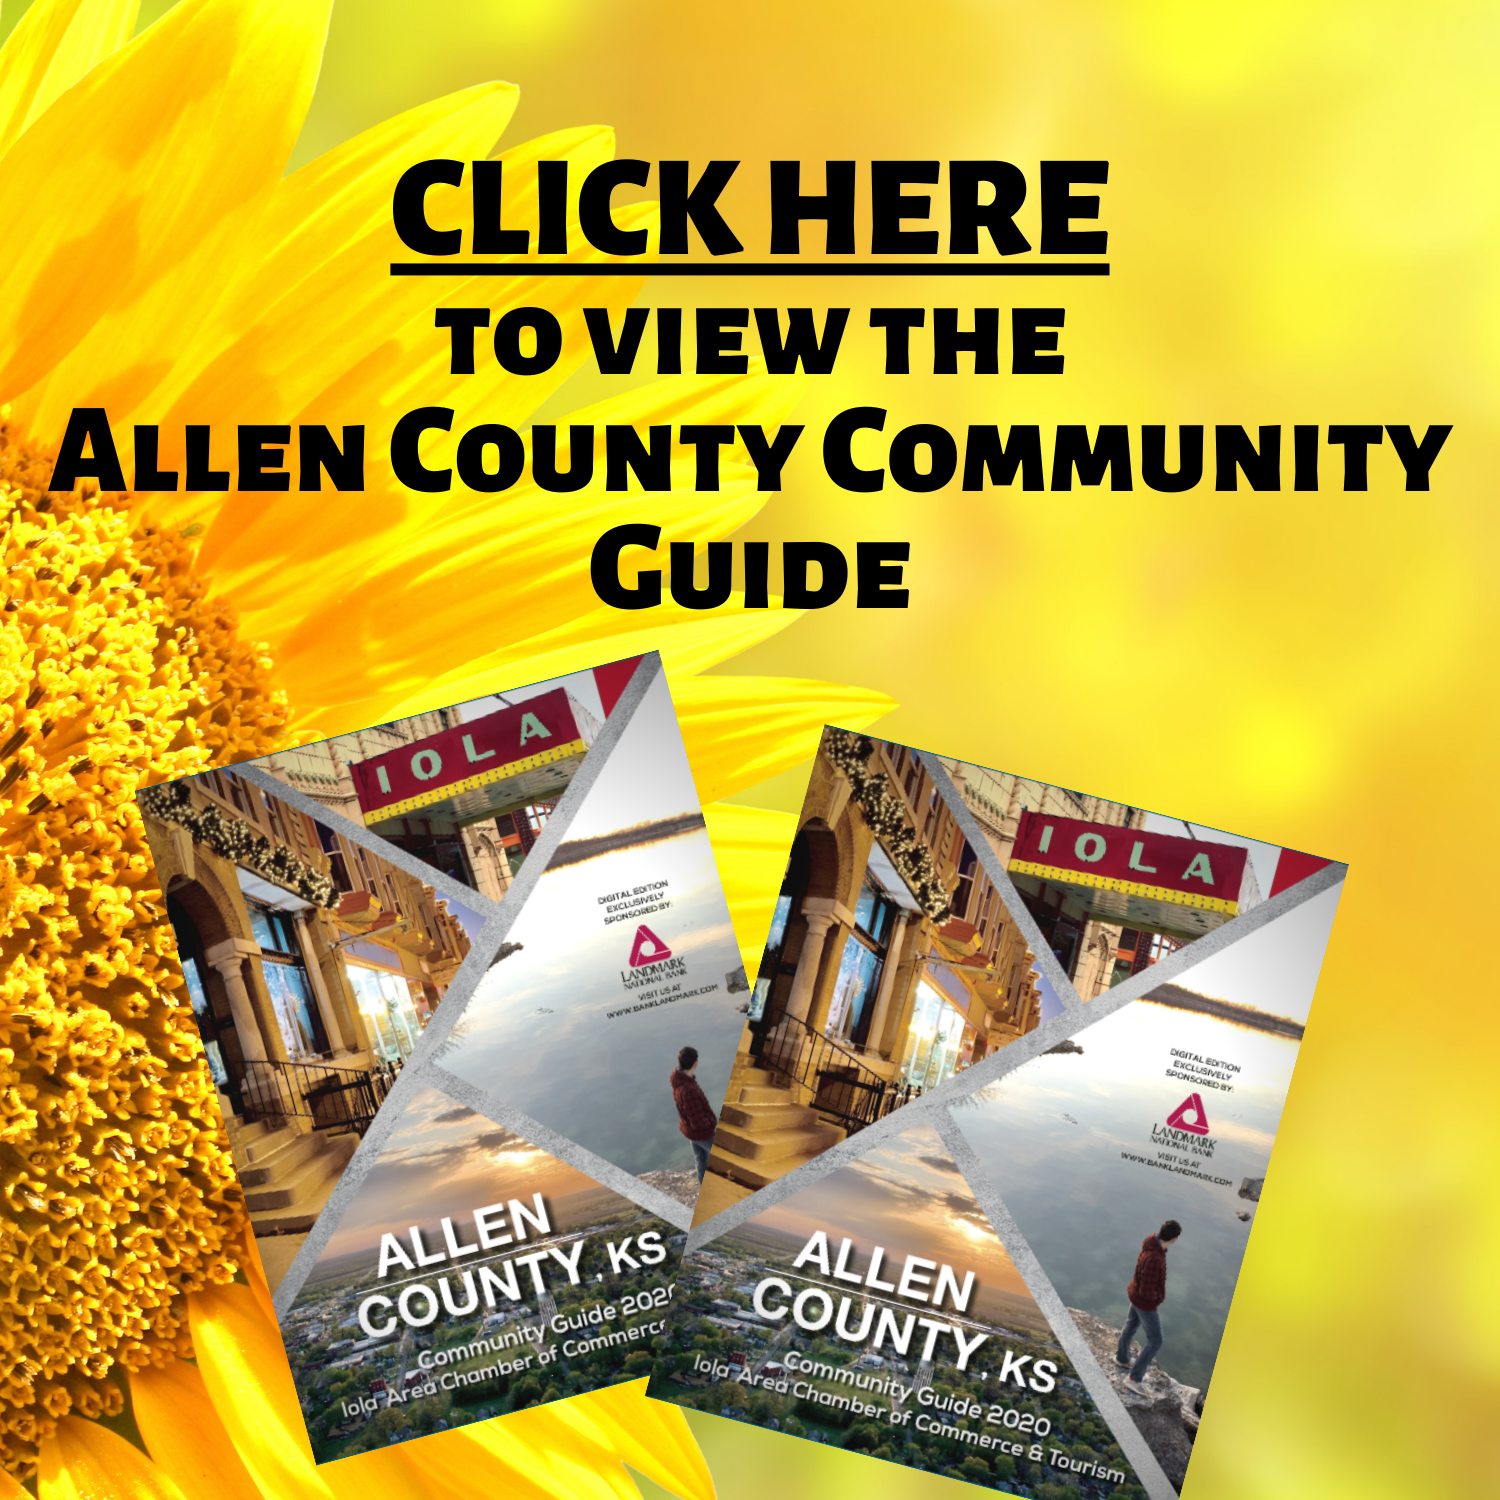 Allen County Community Guide